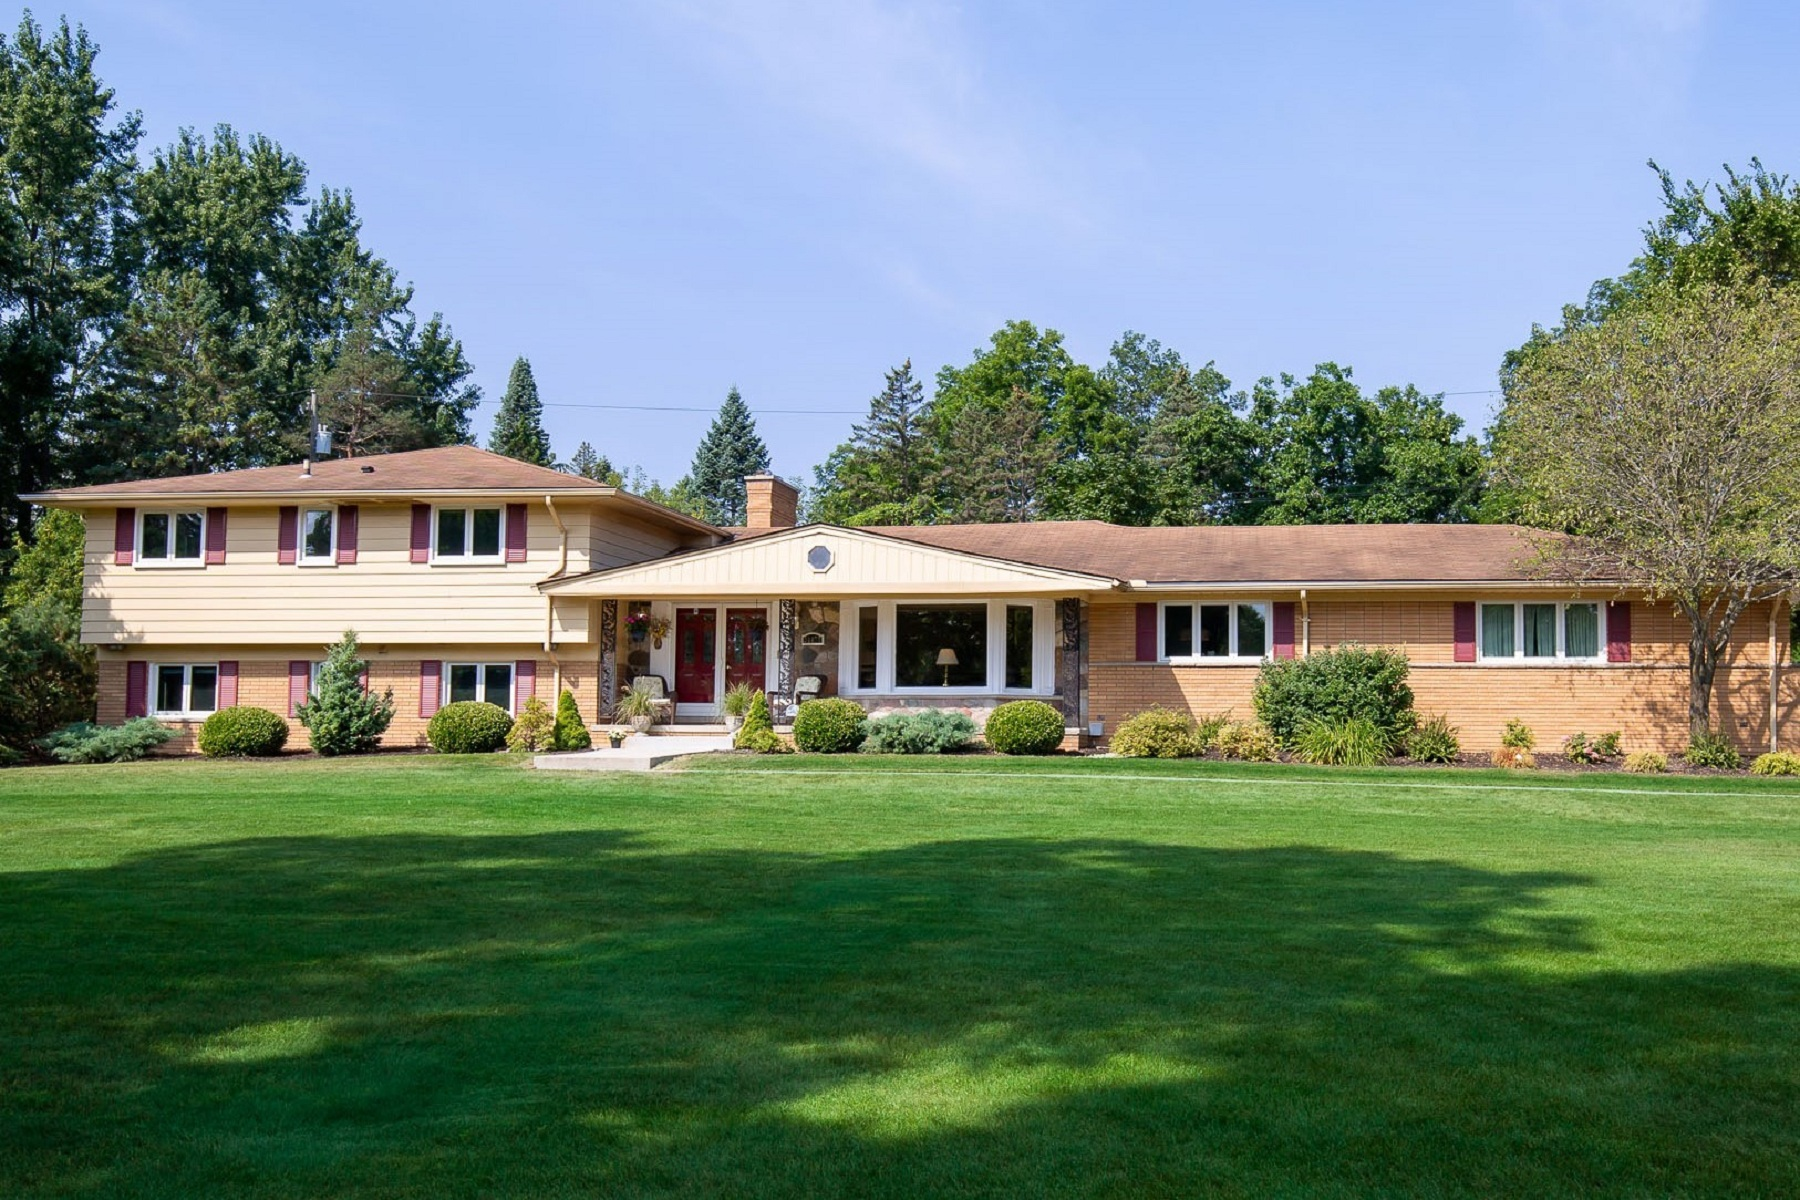 Single Family Homes for Active at Beverly Hills Village 32277 Westlady Drive Franklin, Michigan 48025 United States